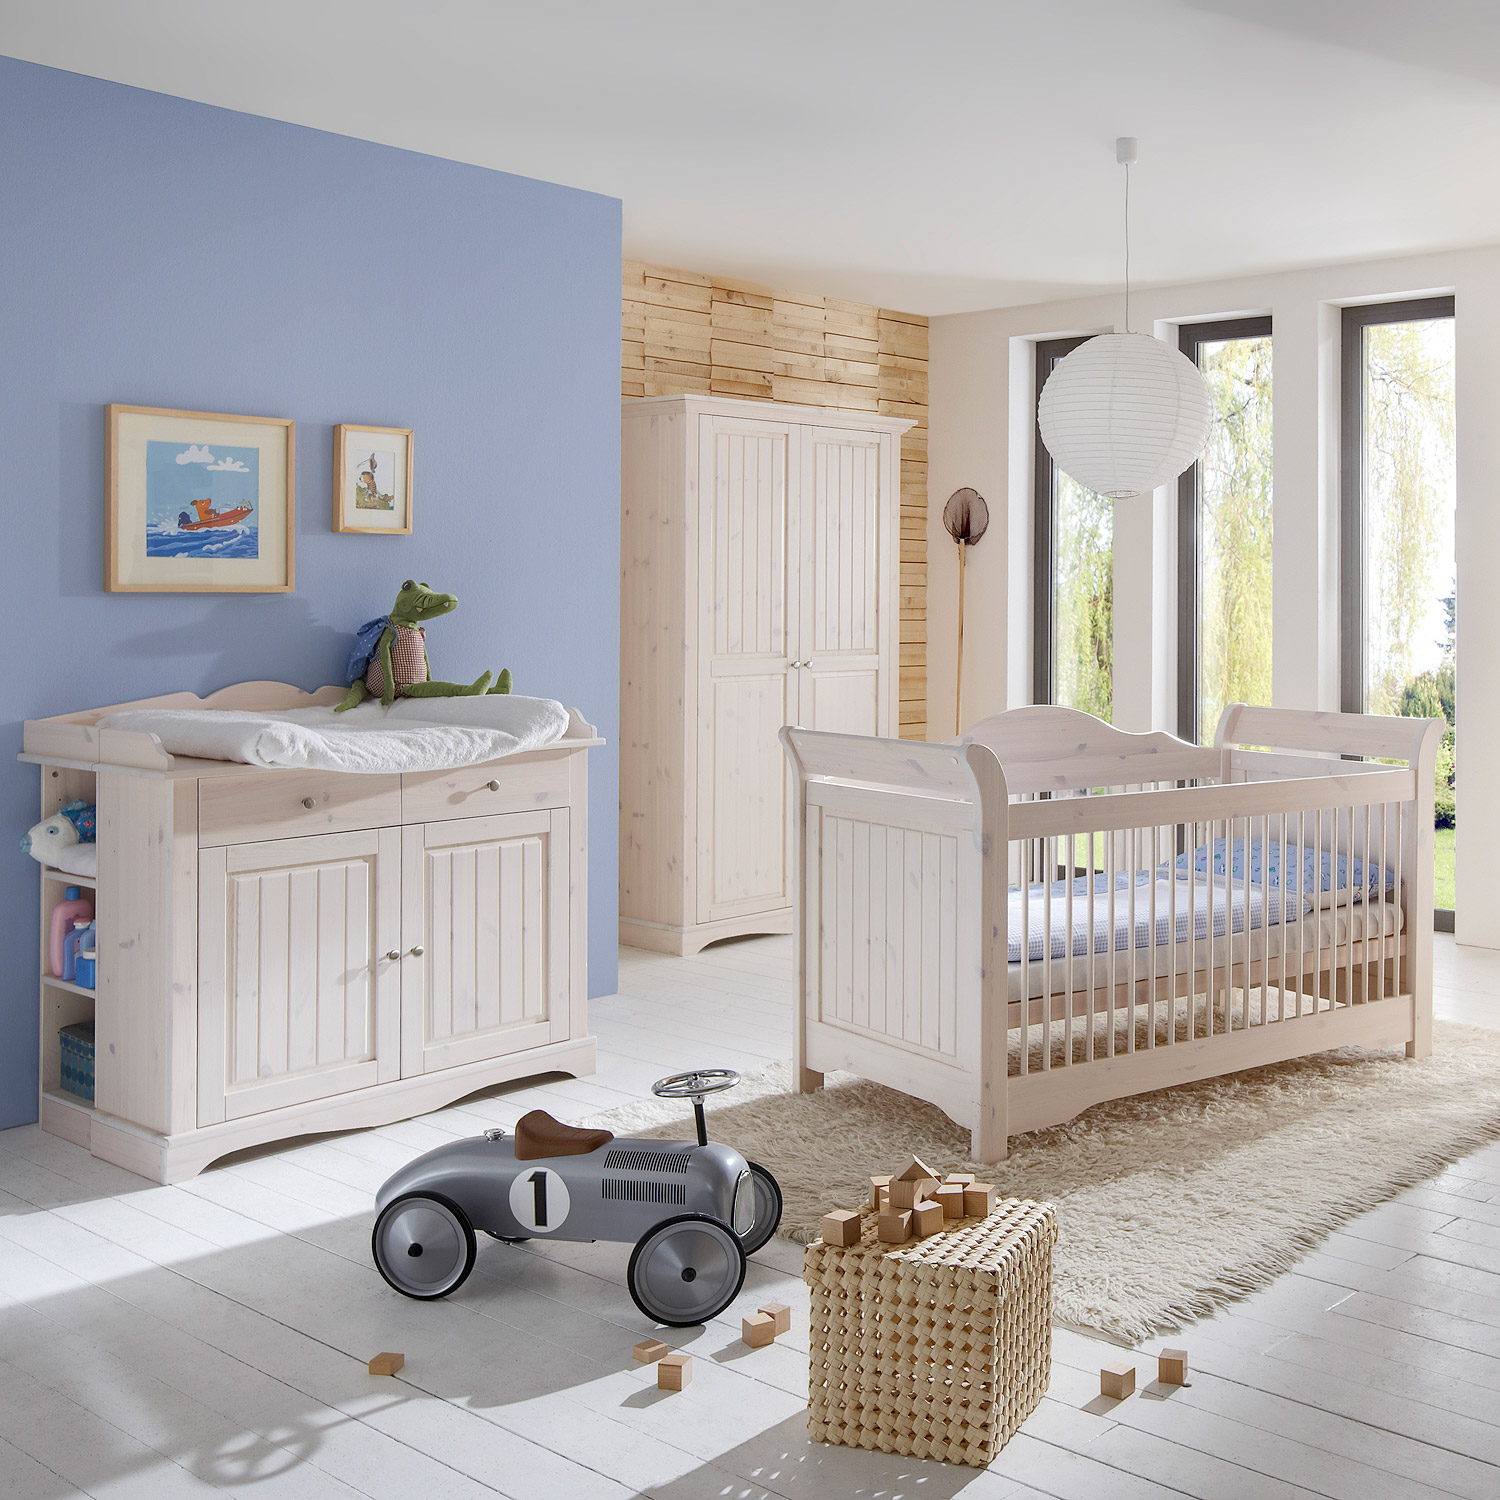 babyzimmer lotta babybett schrank wickelkommode kiefer. Black Bedroom Furniture Sets. Home Design Ideas